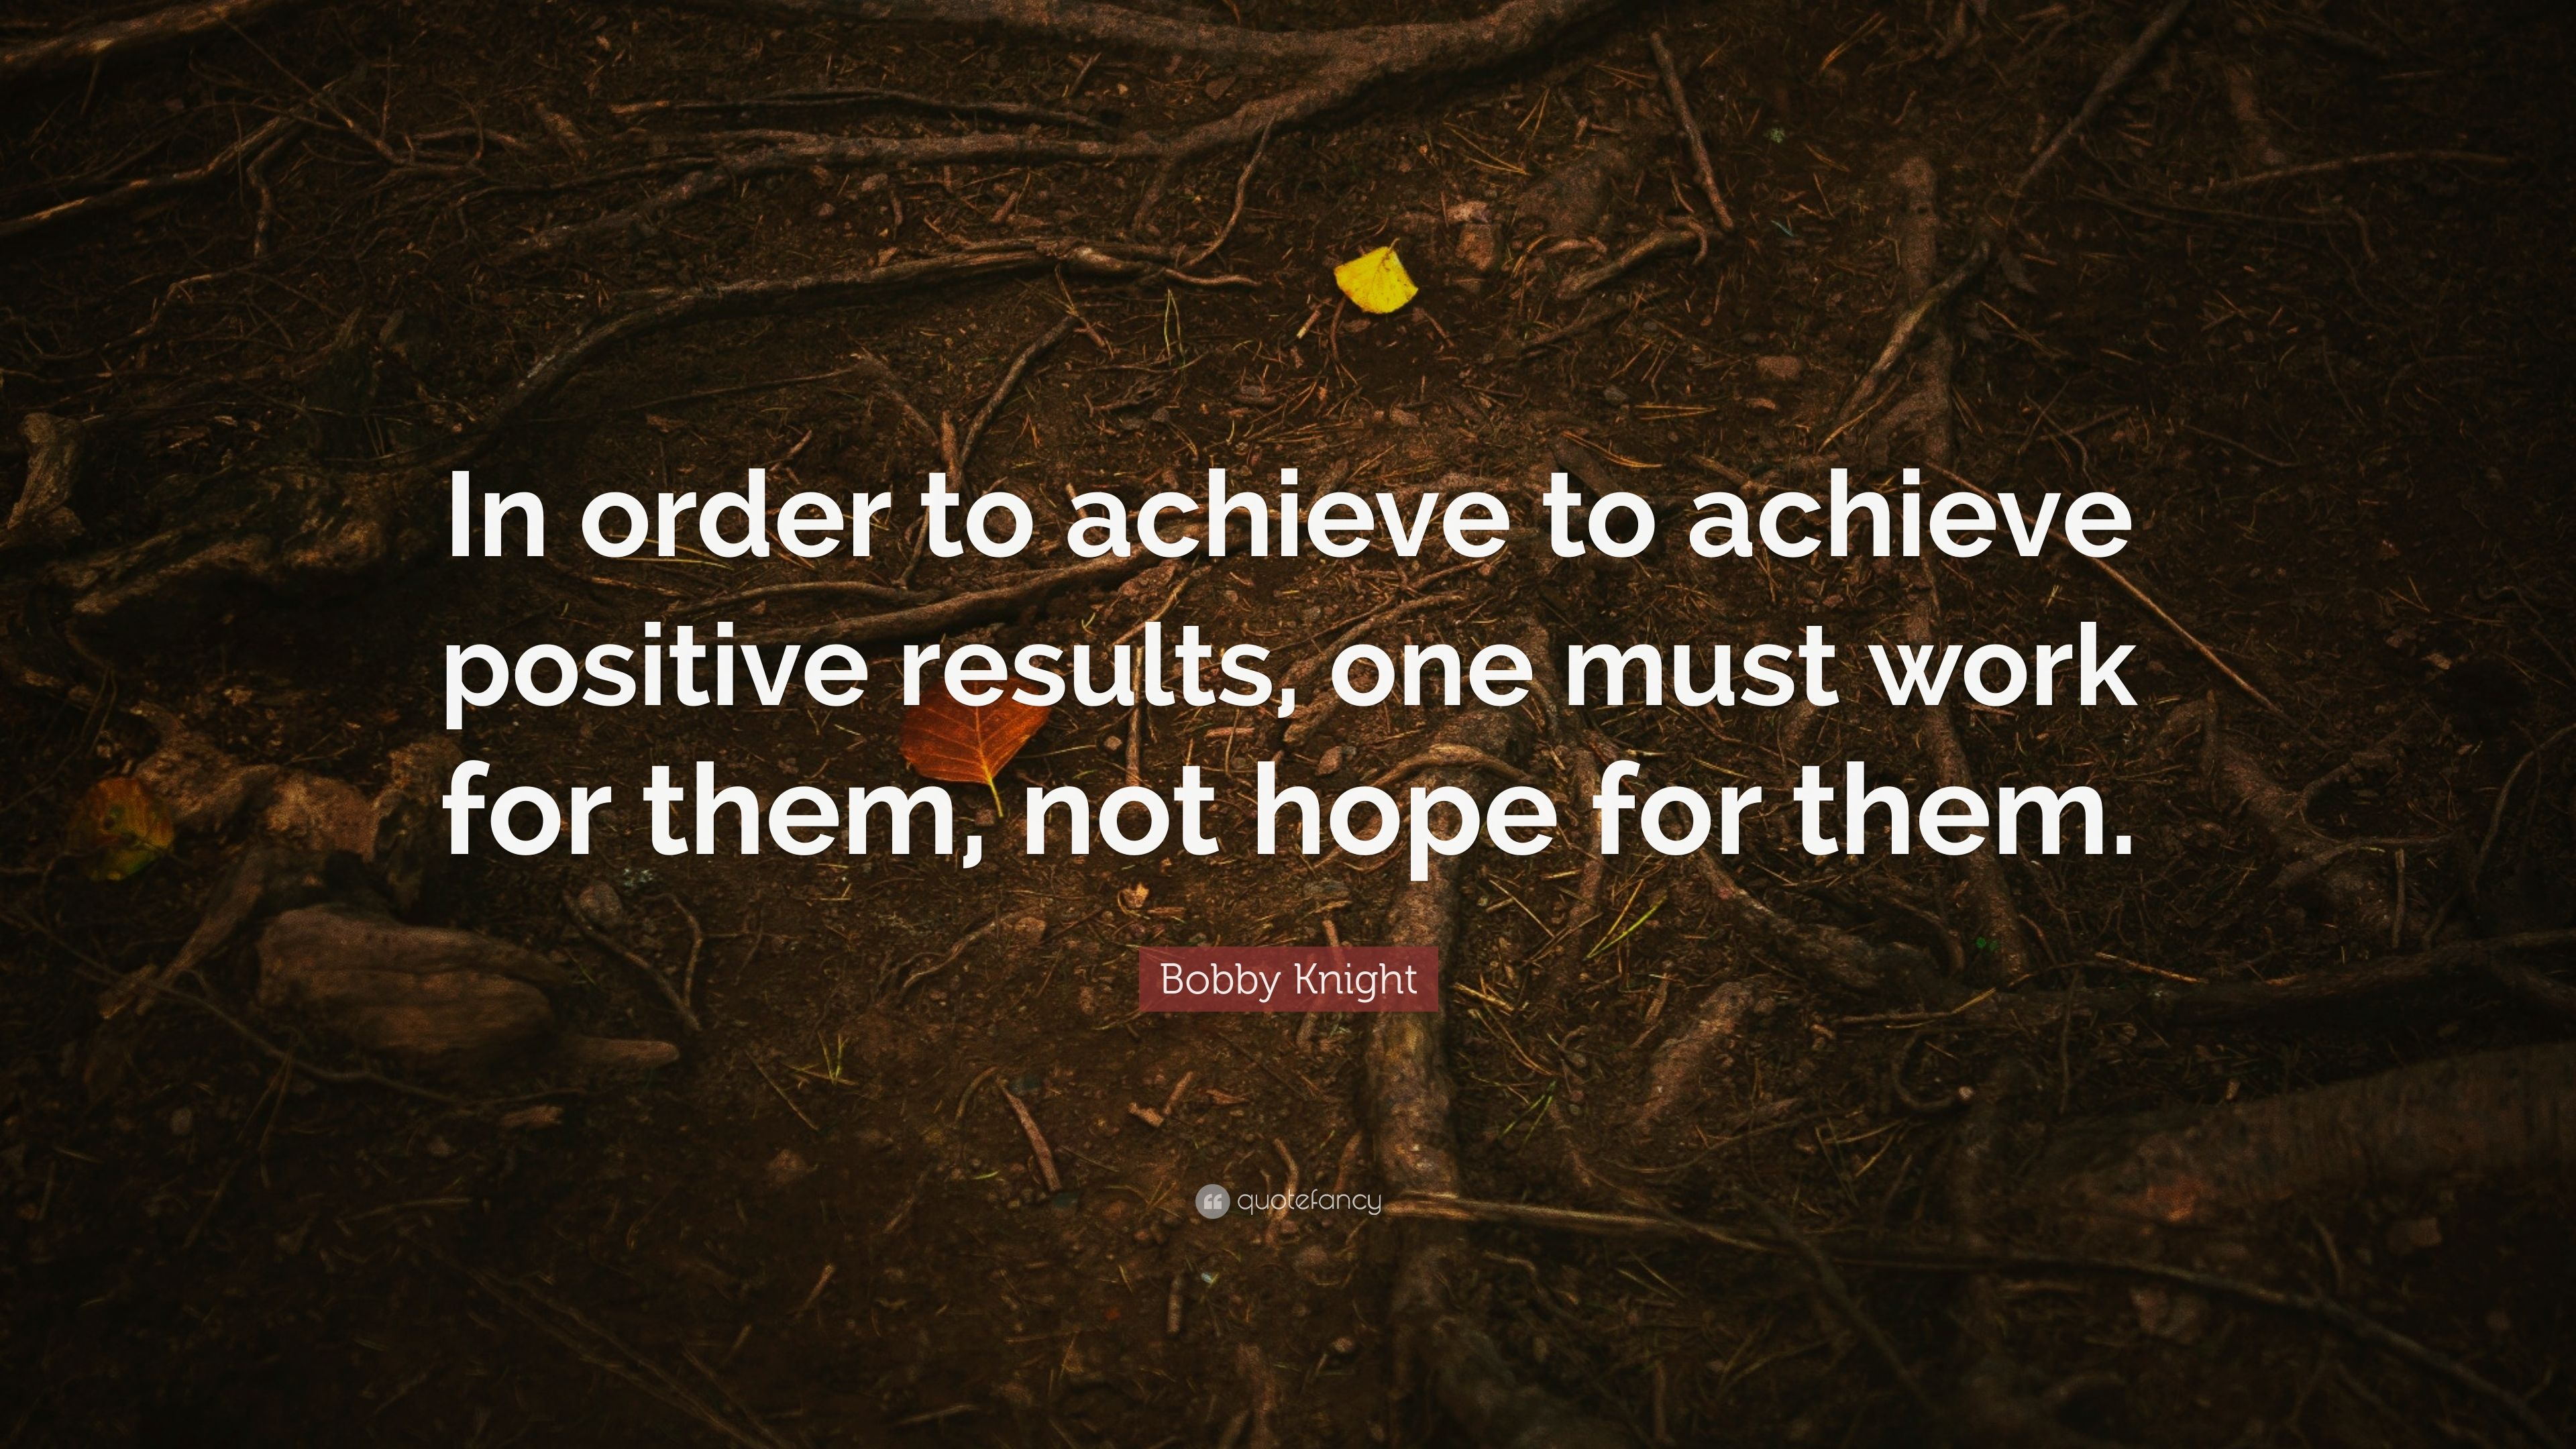 Bobby Knight Quote In Order To Achieve To Achieve Positive Results